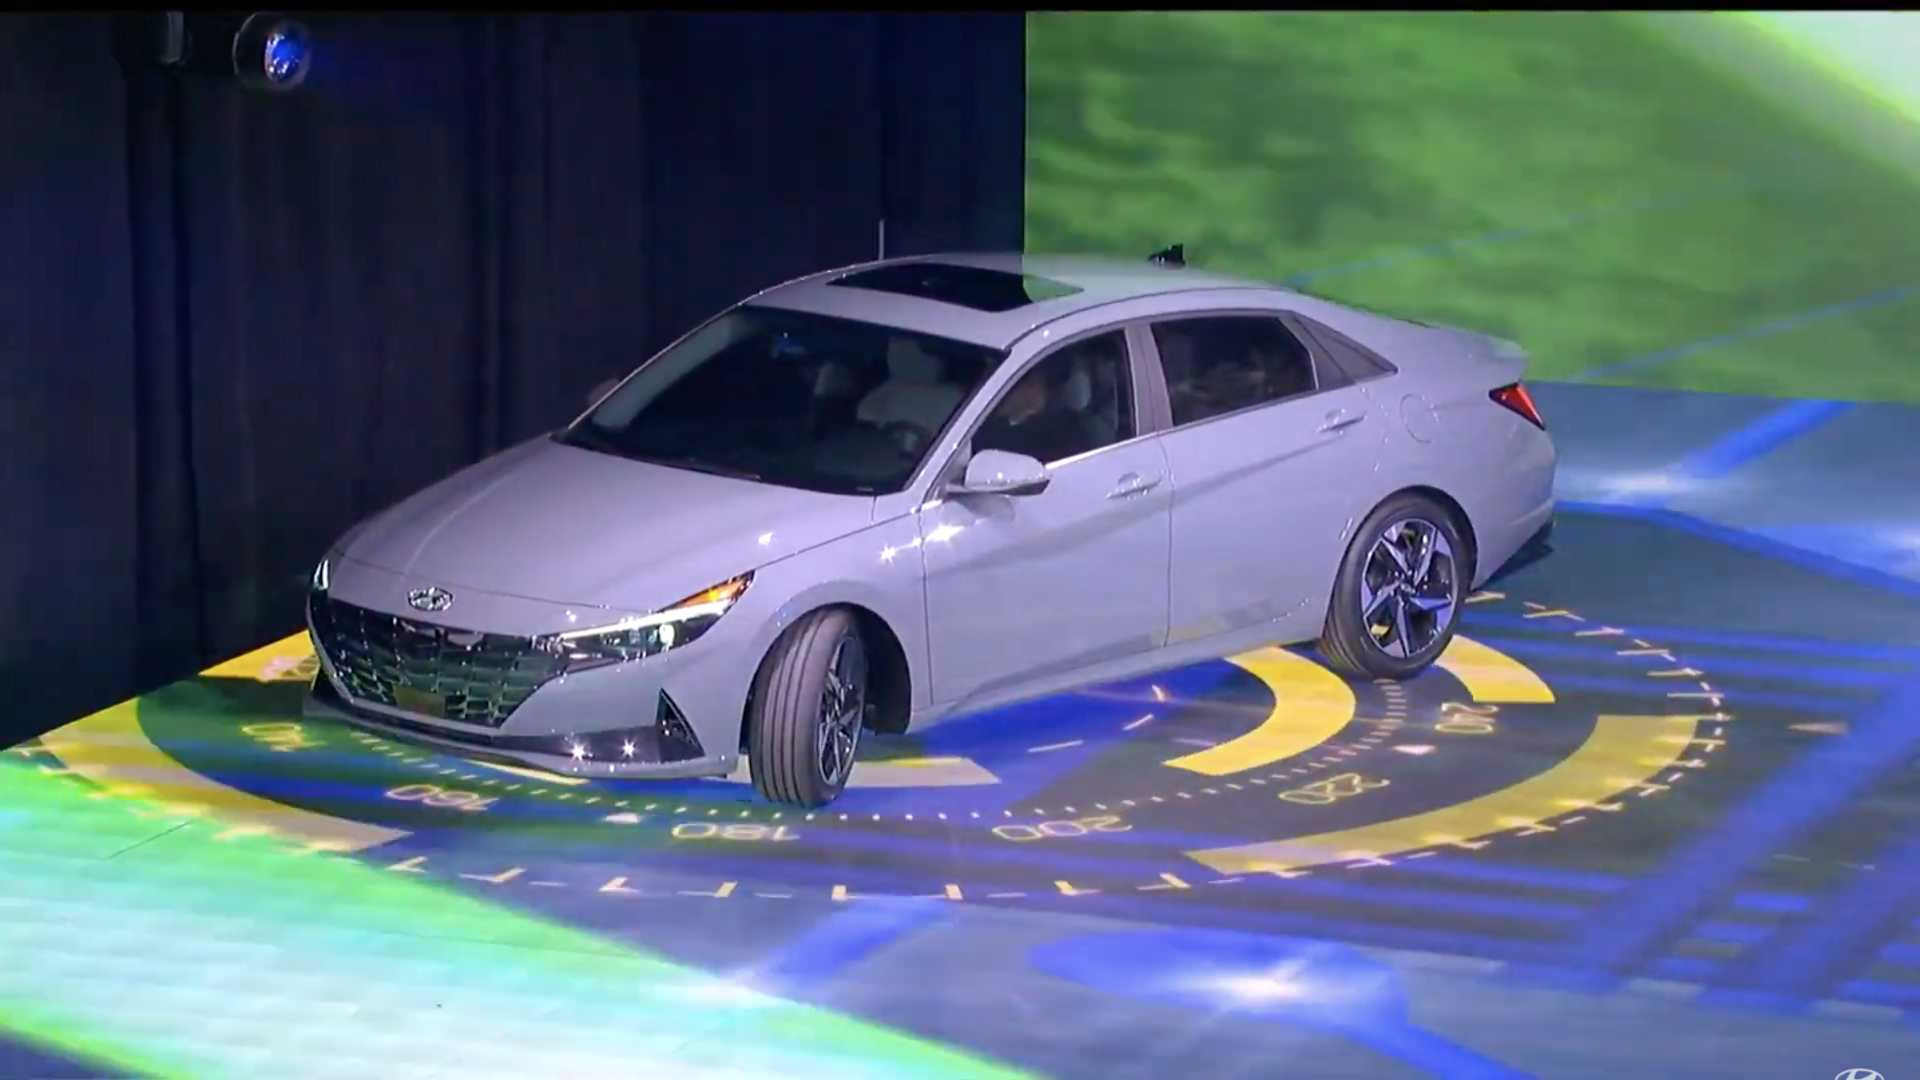 Available in a new avatar, the hybrid version gets only some exterior colors. 2021 Hyundai Elantra Hybrid Motor1 Com Photos